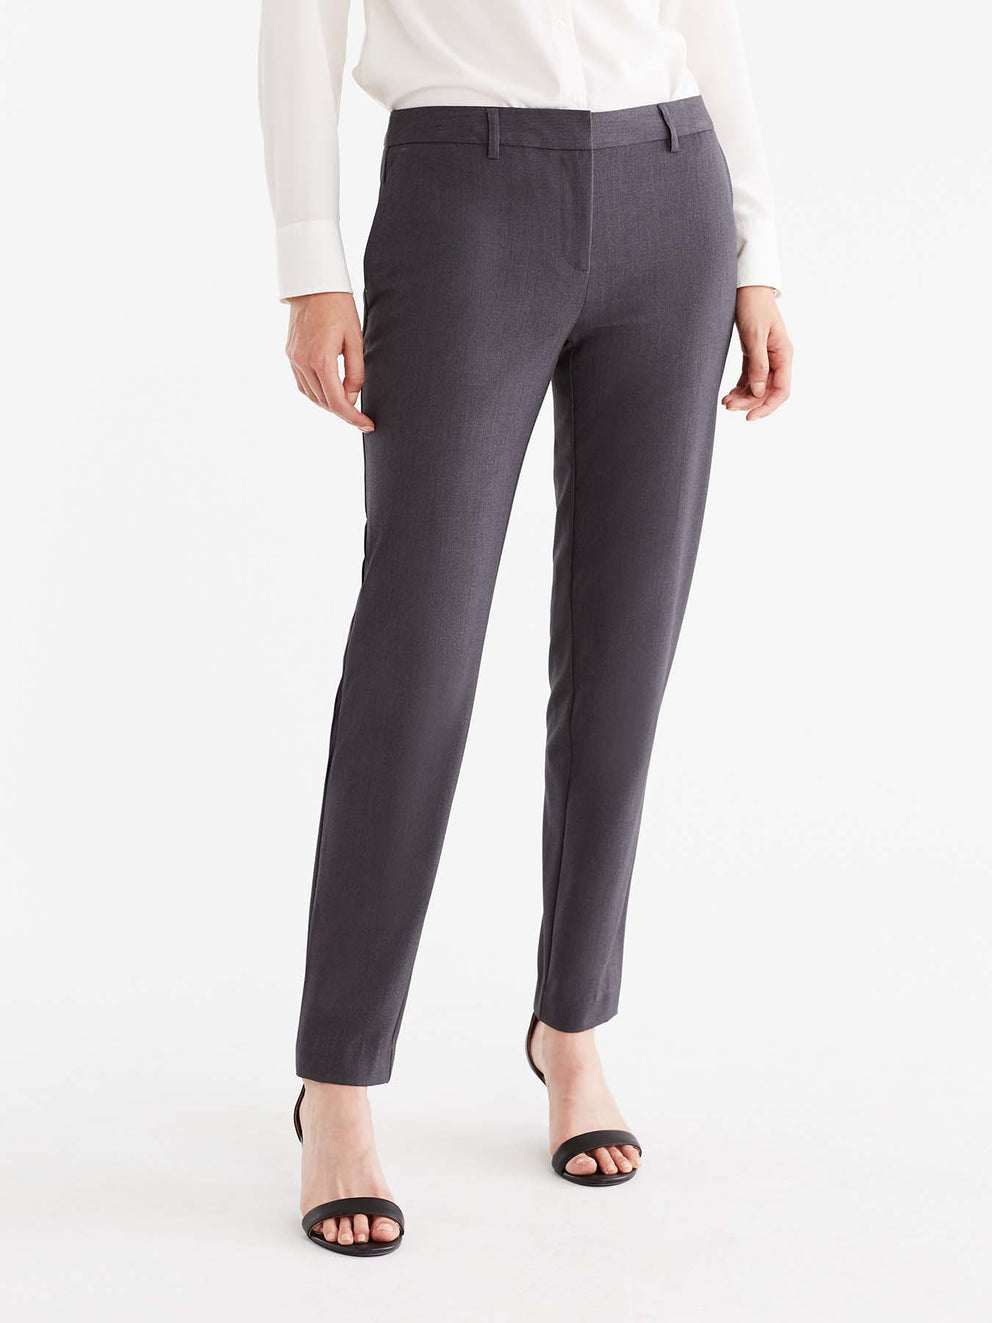 The Jones New York Grace Full-Length Pant in color Charcoal - Image Position 1